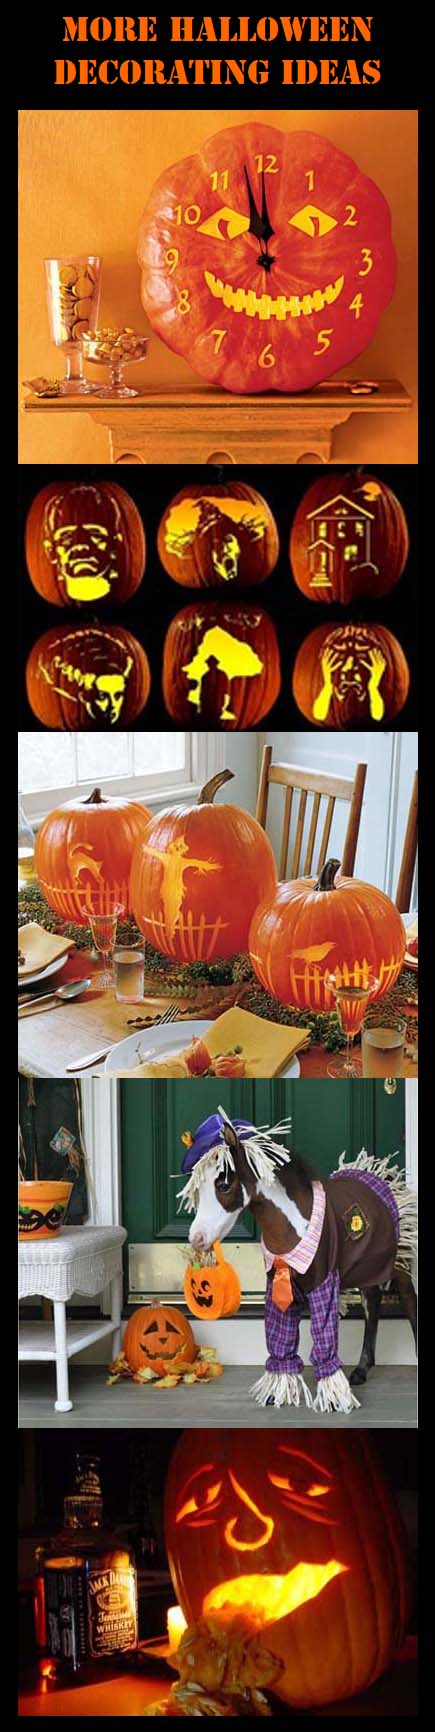 More Halloween Decorating Ideas